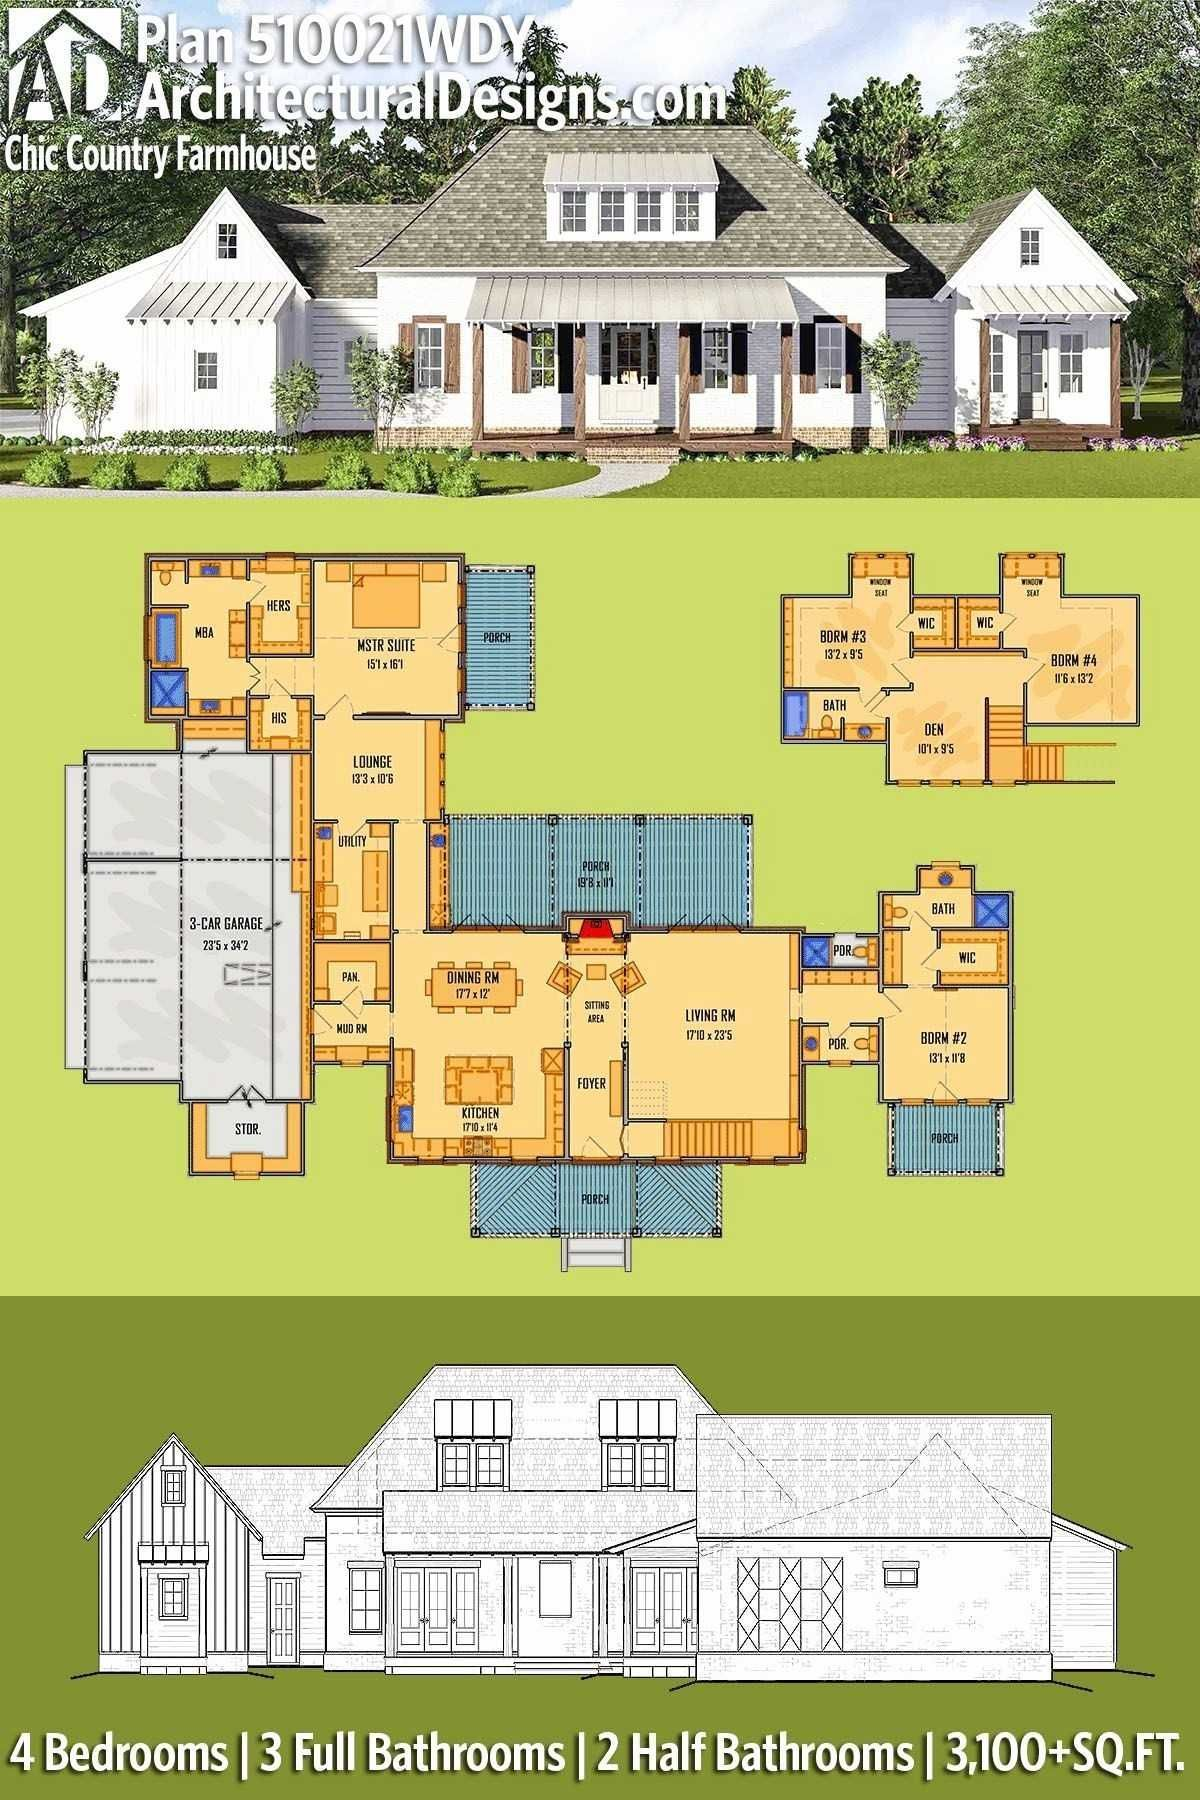 21 Beyond Words Open Farmhouse Floor Plan To Match In Any House Themes House Plans Farmhouse Architectural Design House Plans House Blueprints